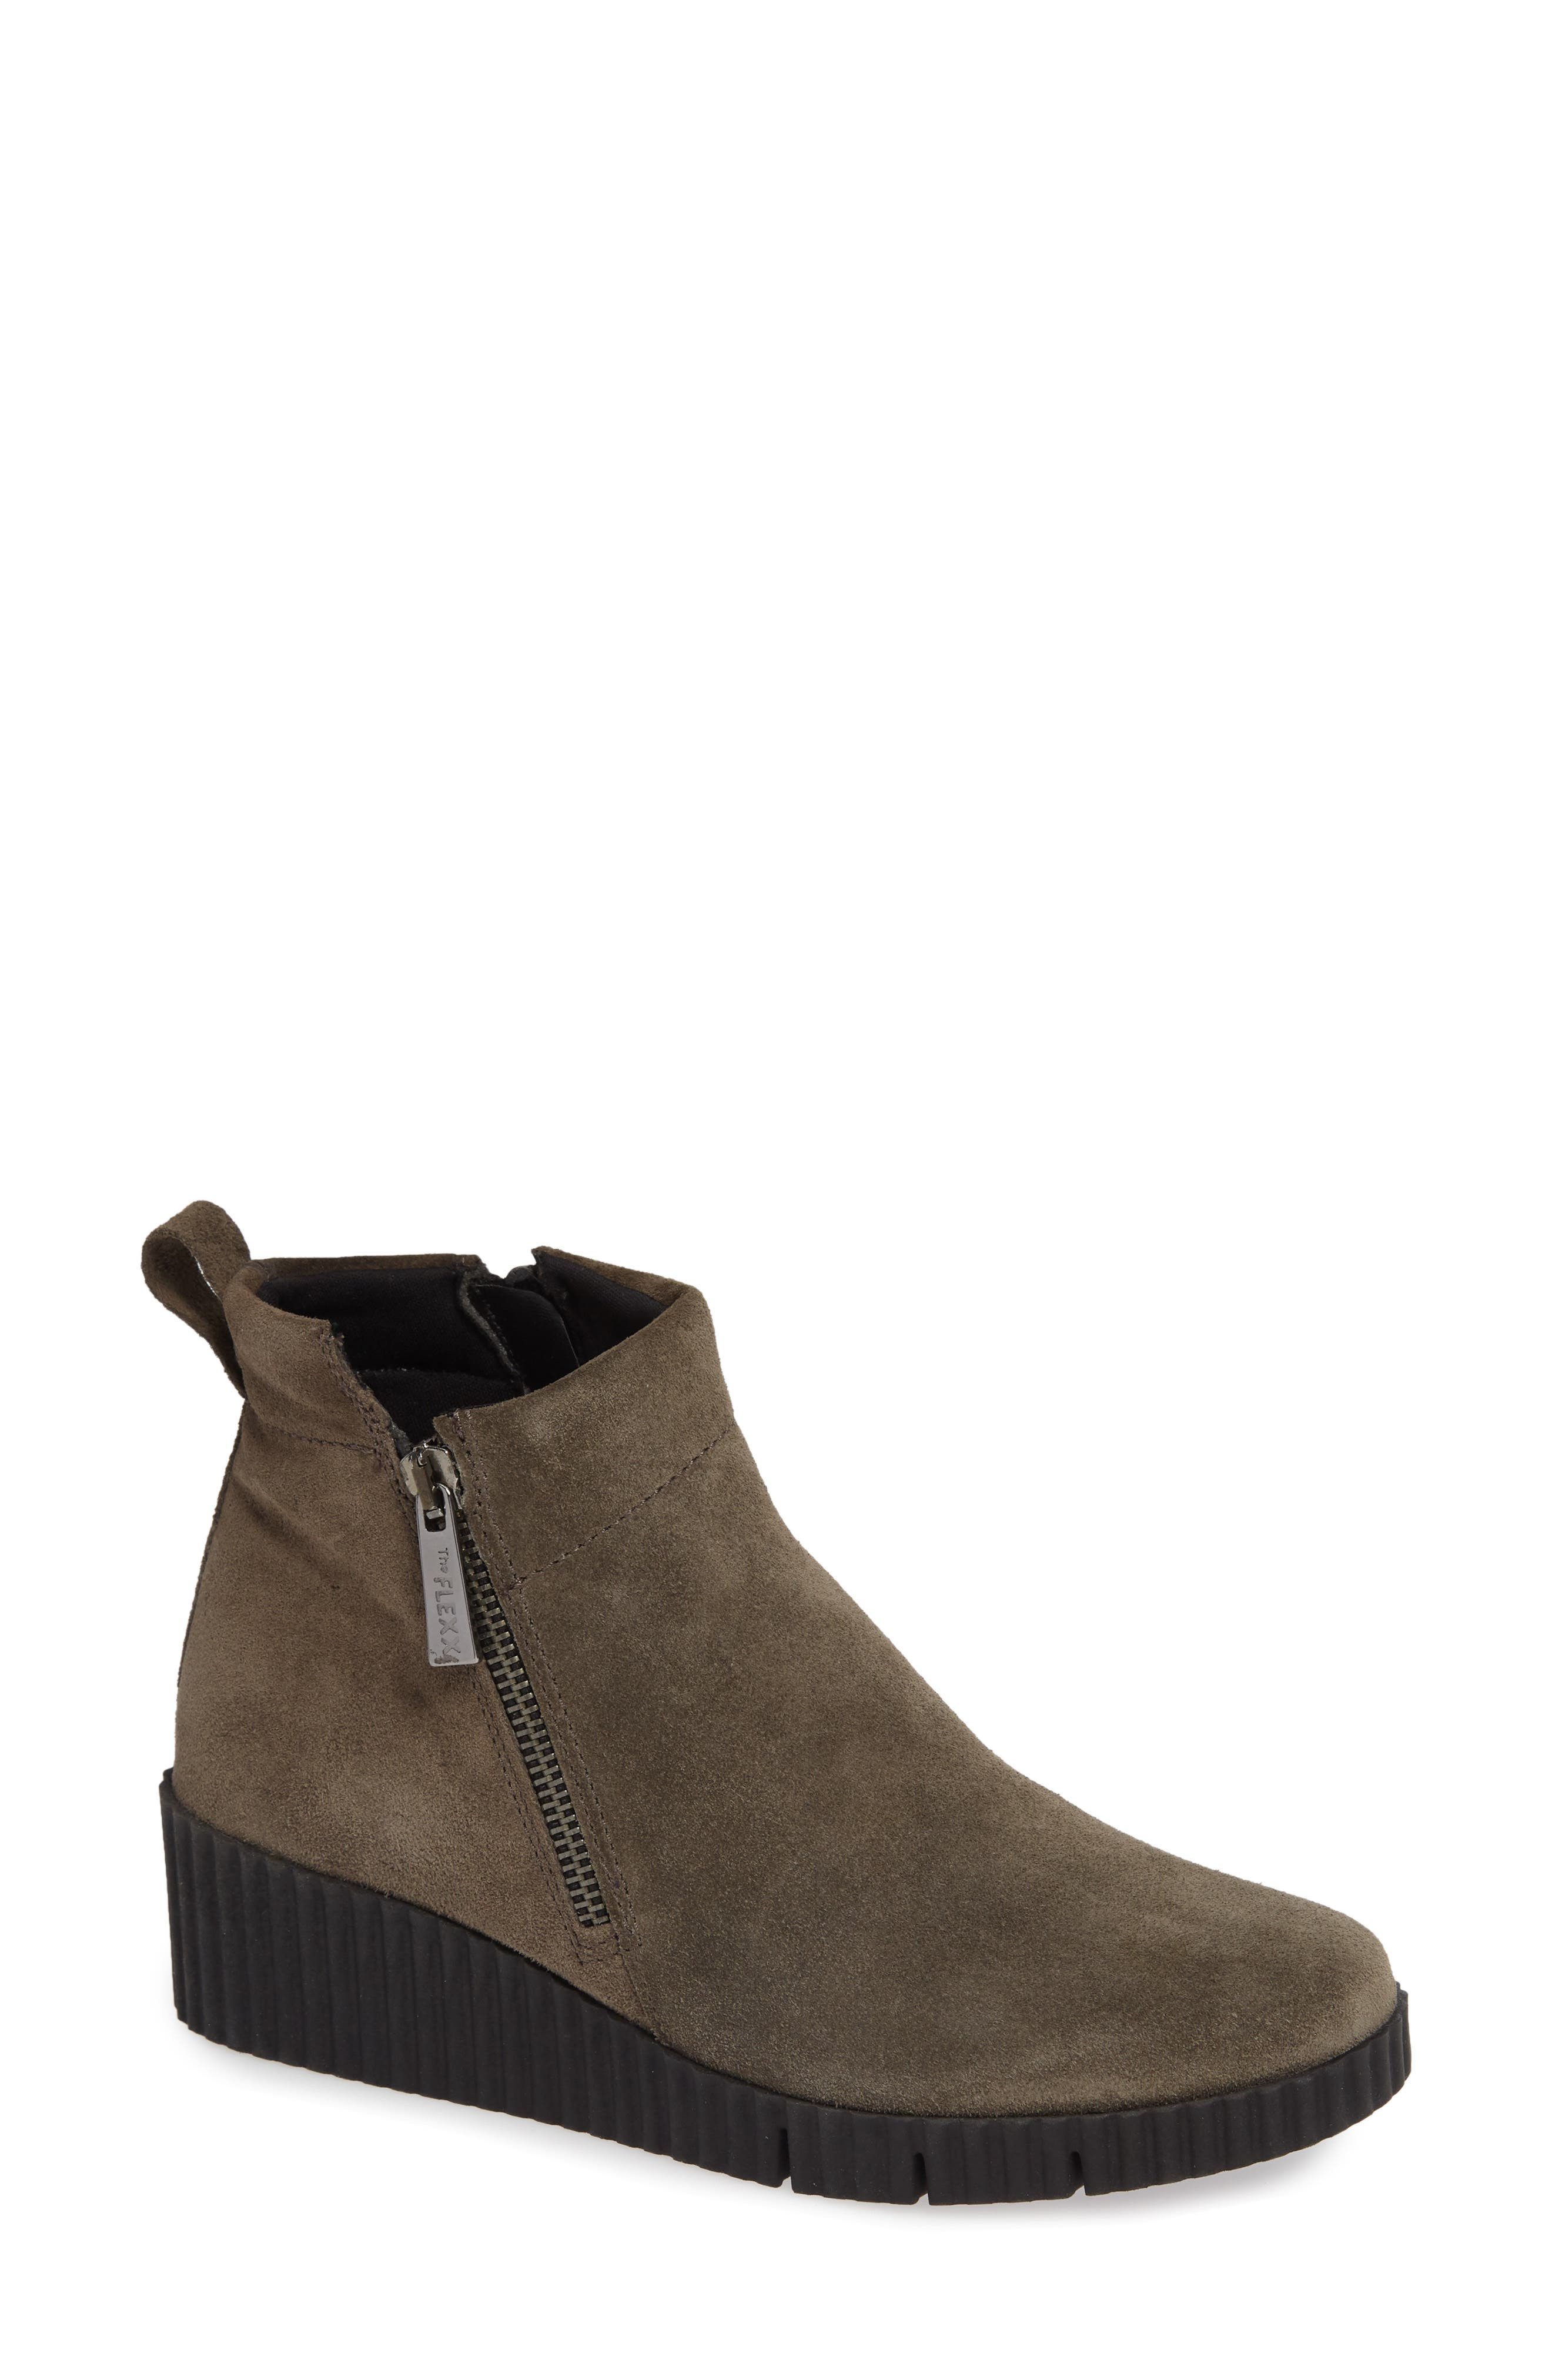 THE FLEXX, Easy Does It Wedge Bootie, Main thumbnail 1, color, BROWN SUEDE